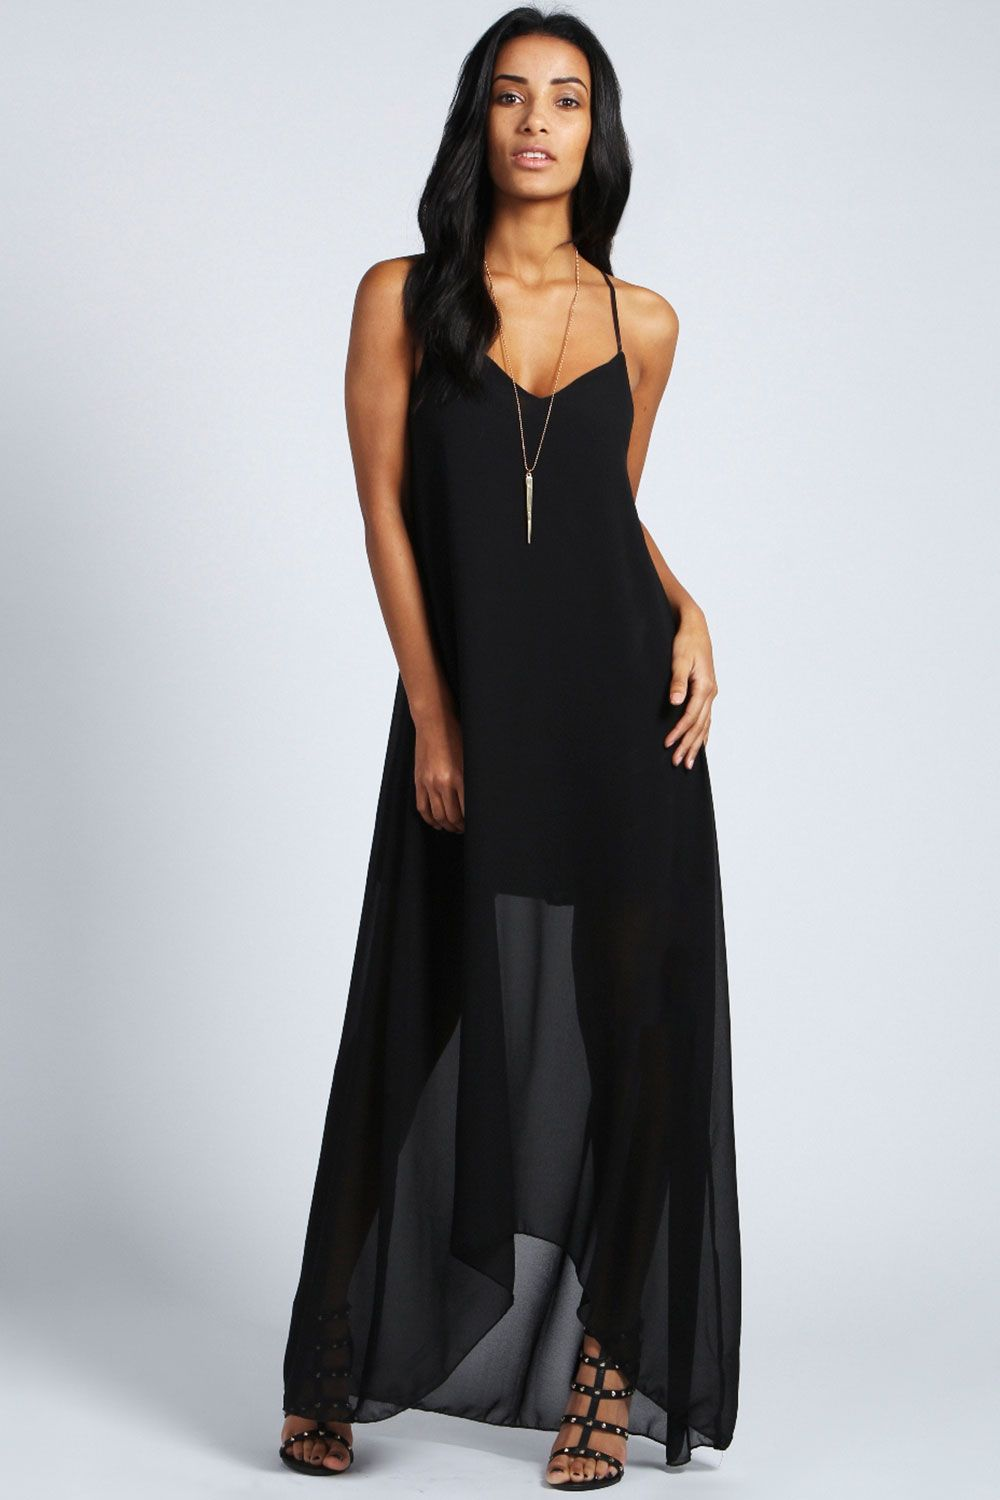 Suboo ipanema maxi dress